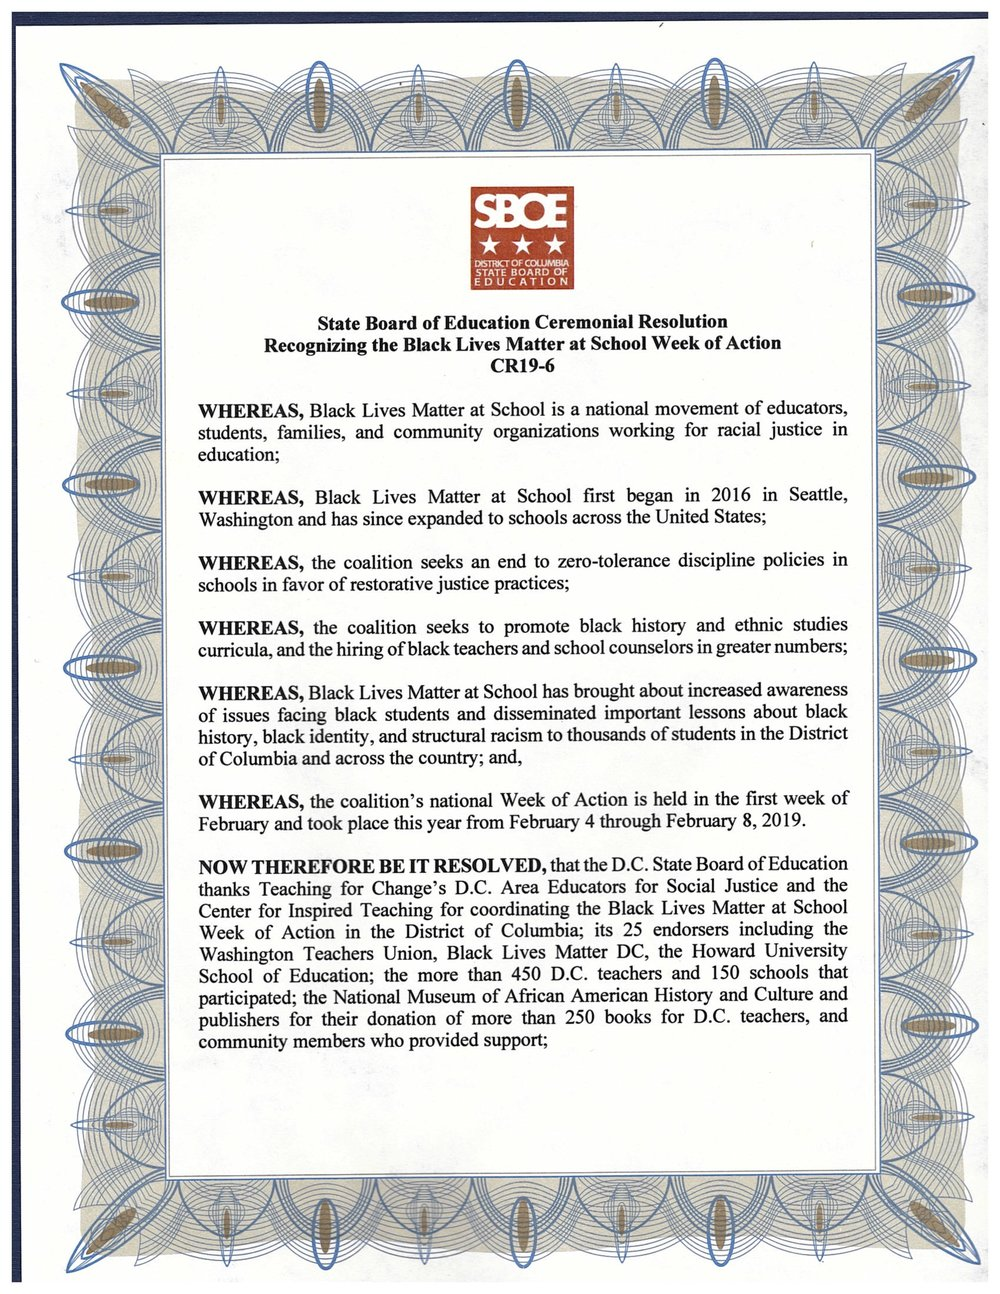 State Board of Education Ceremonial Resolution Recongizing the Black Lives Matter at School Week of Action _ Page 1.jpg